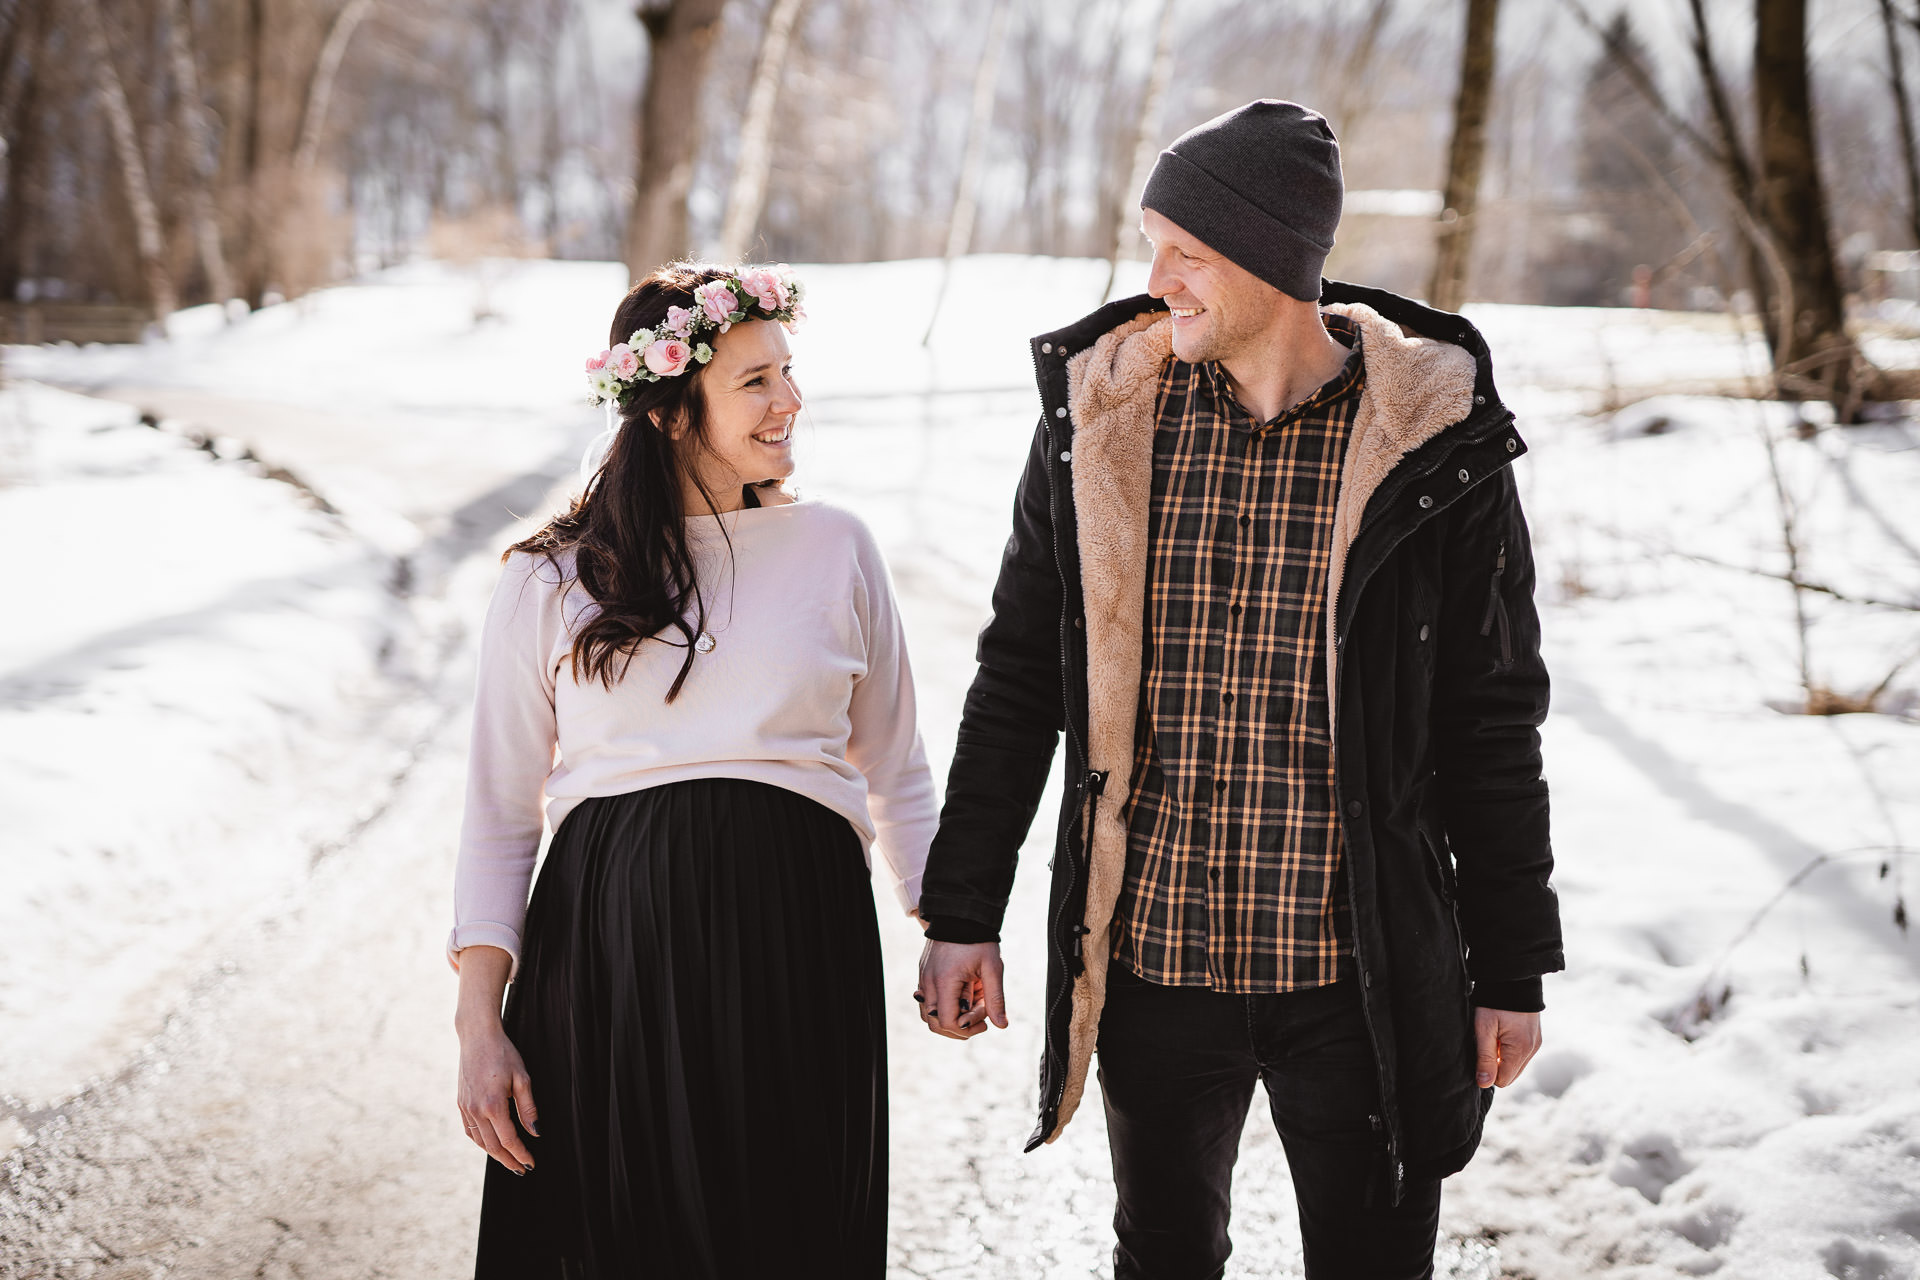 Verena & Manuel Photography | Paarfotos | Paarshooting | Winter